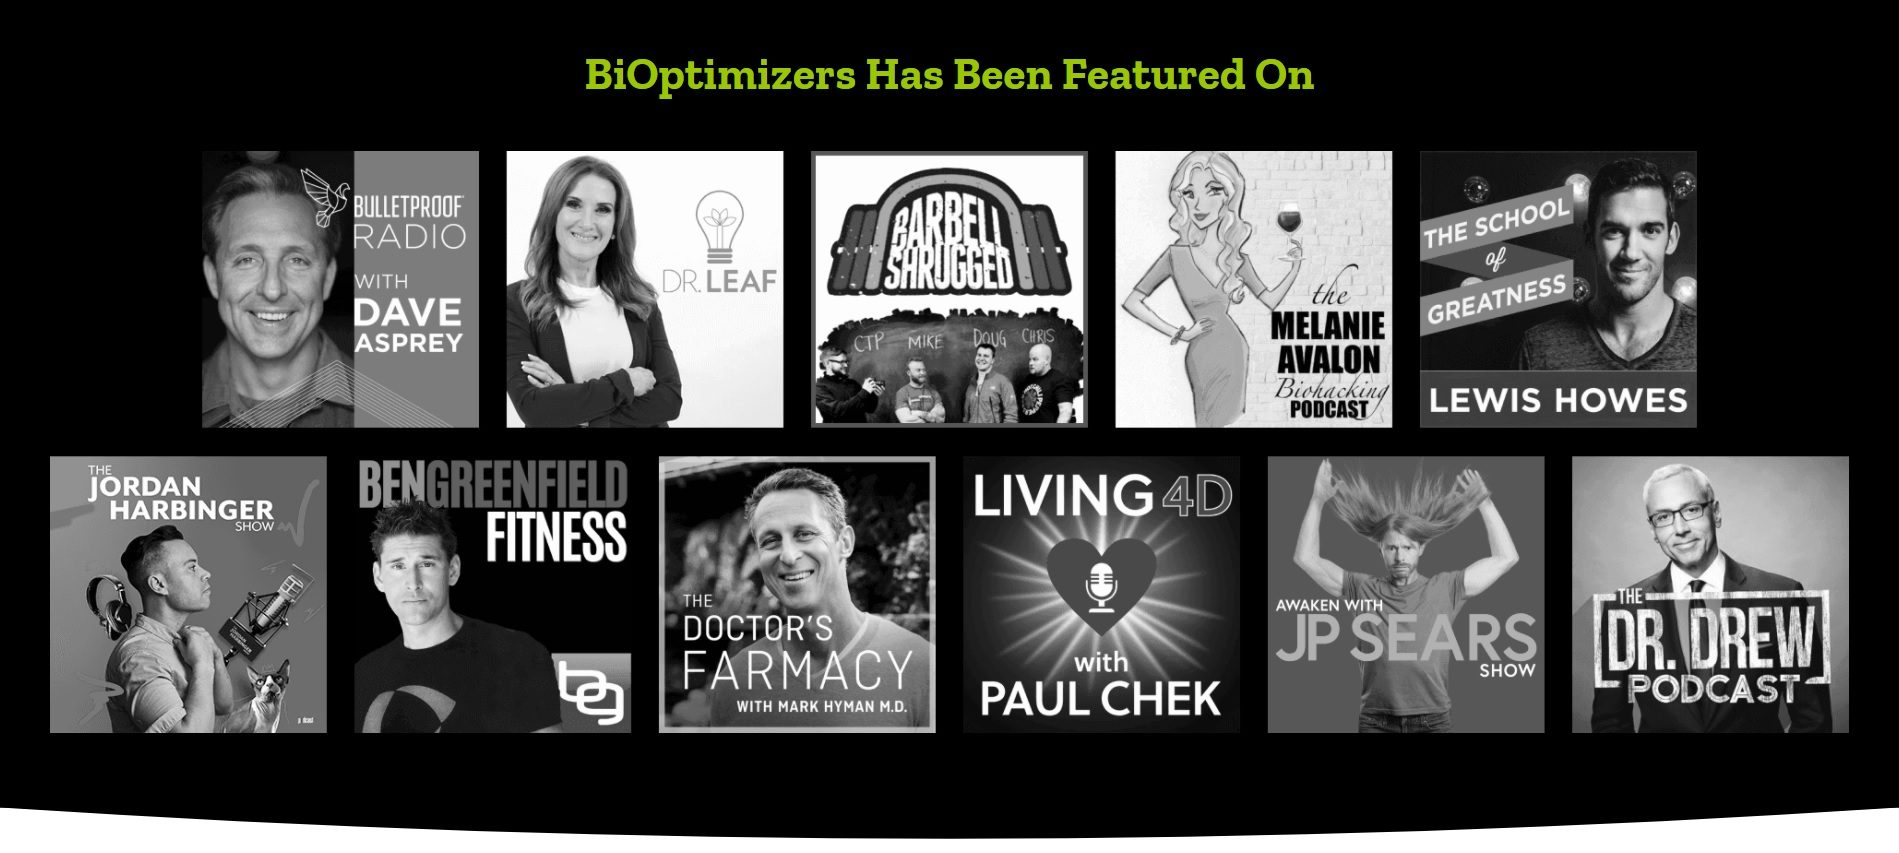 Bioptimizers featured on